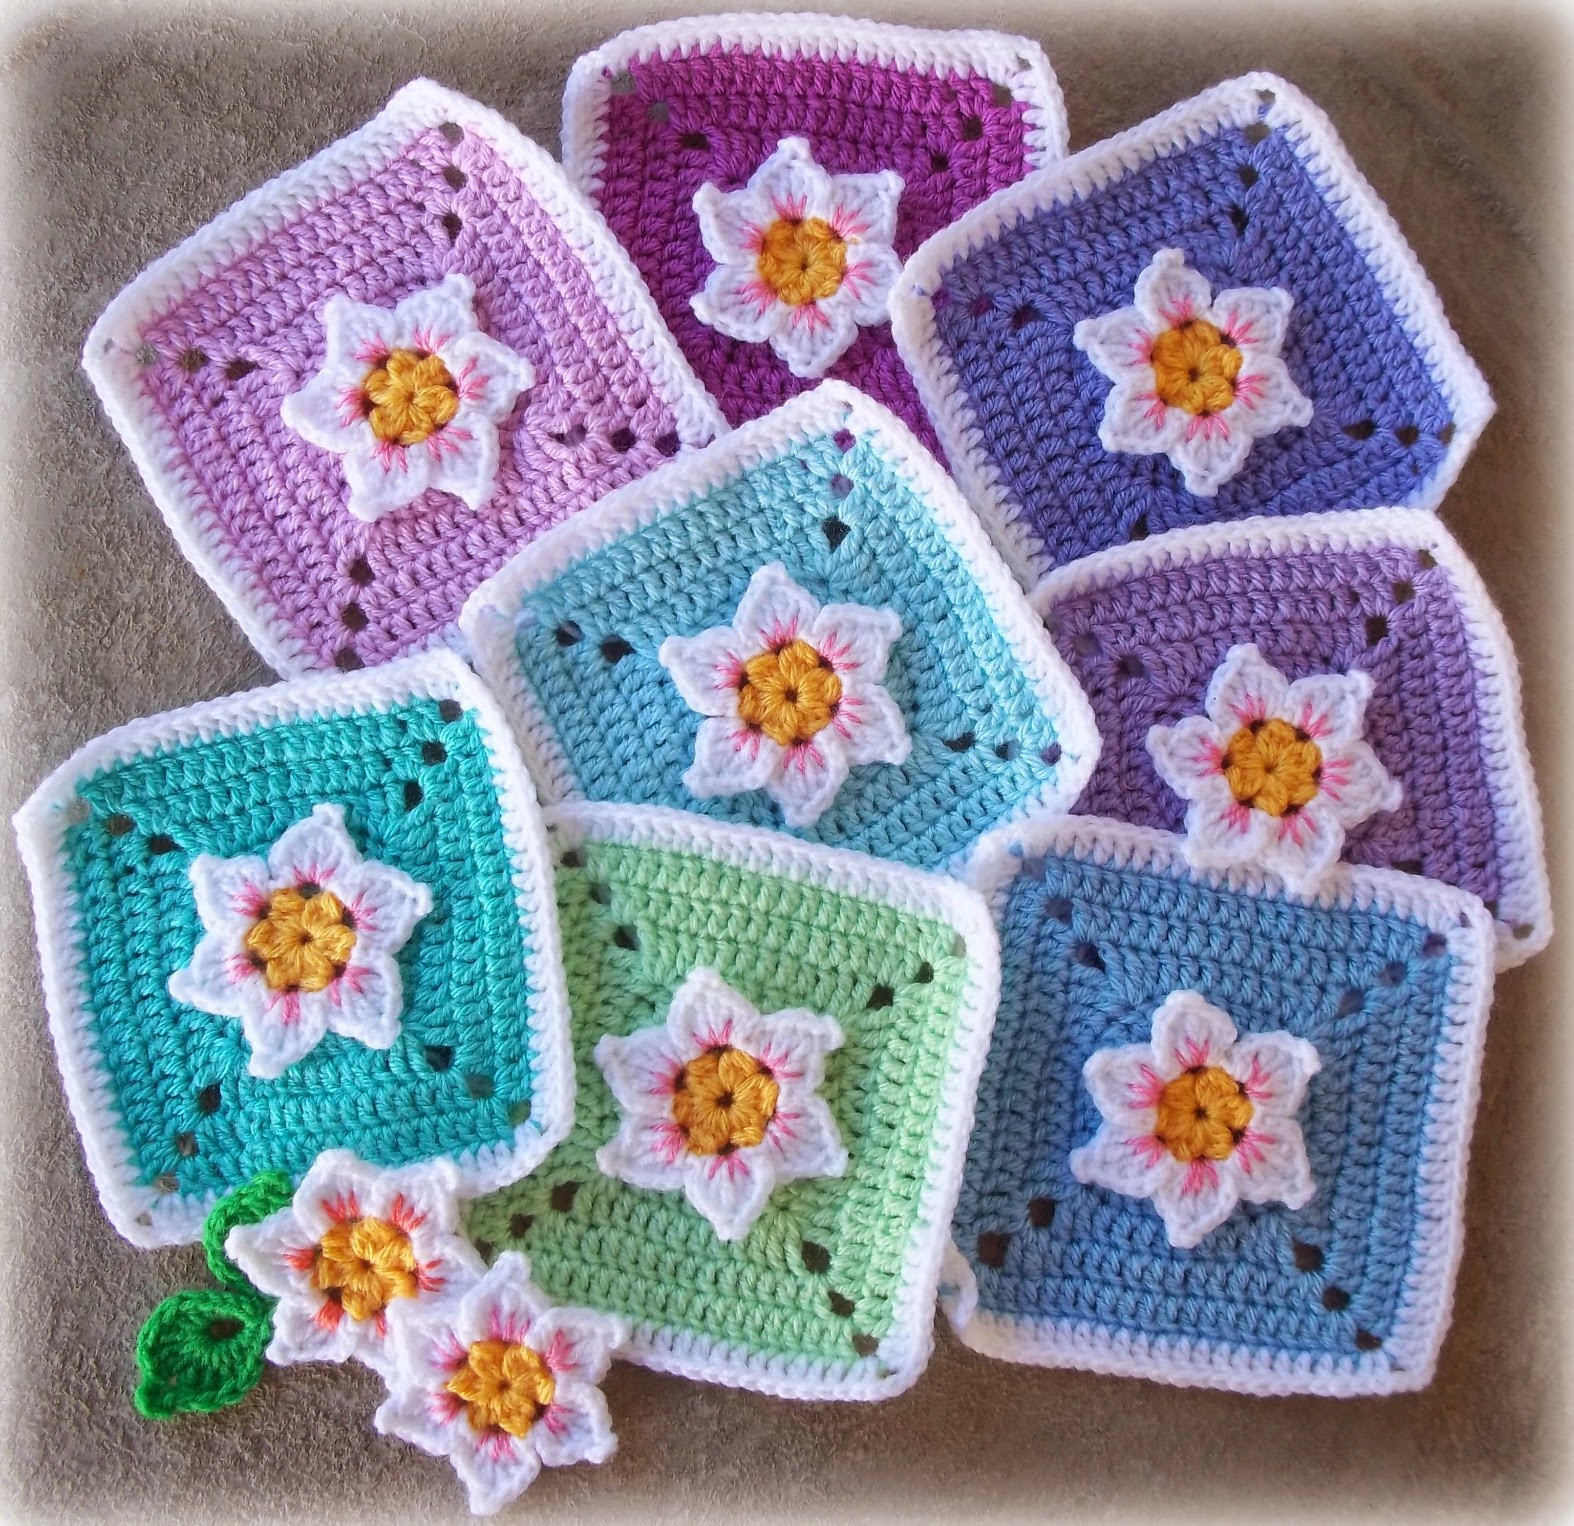 Awesome Zooty Owl S Crafty Blog Crochet Flowers Crochet Flower Square Of Brilliant 47 Models Crochet Flower Square